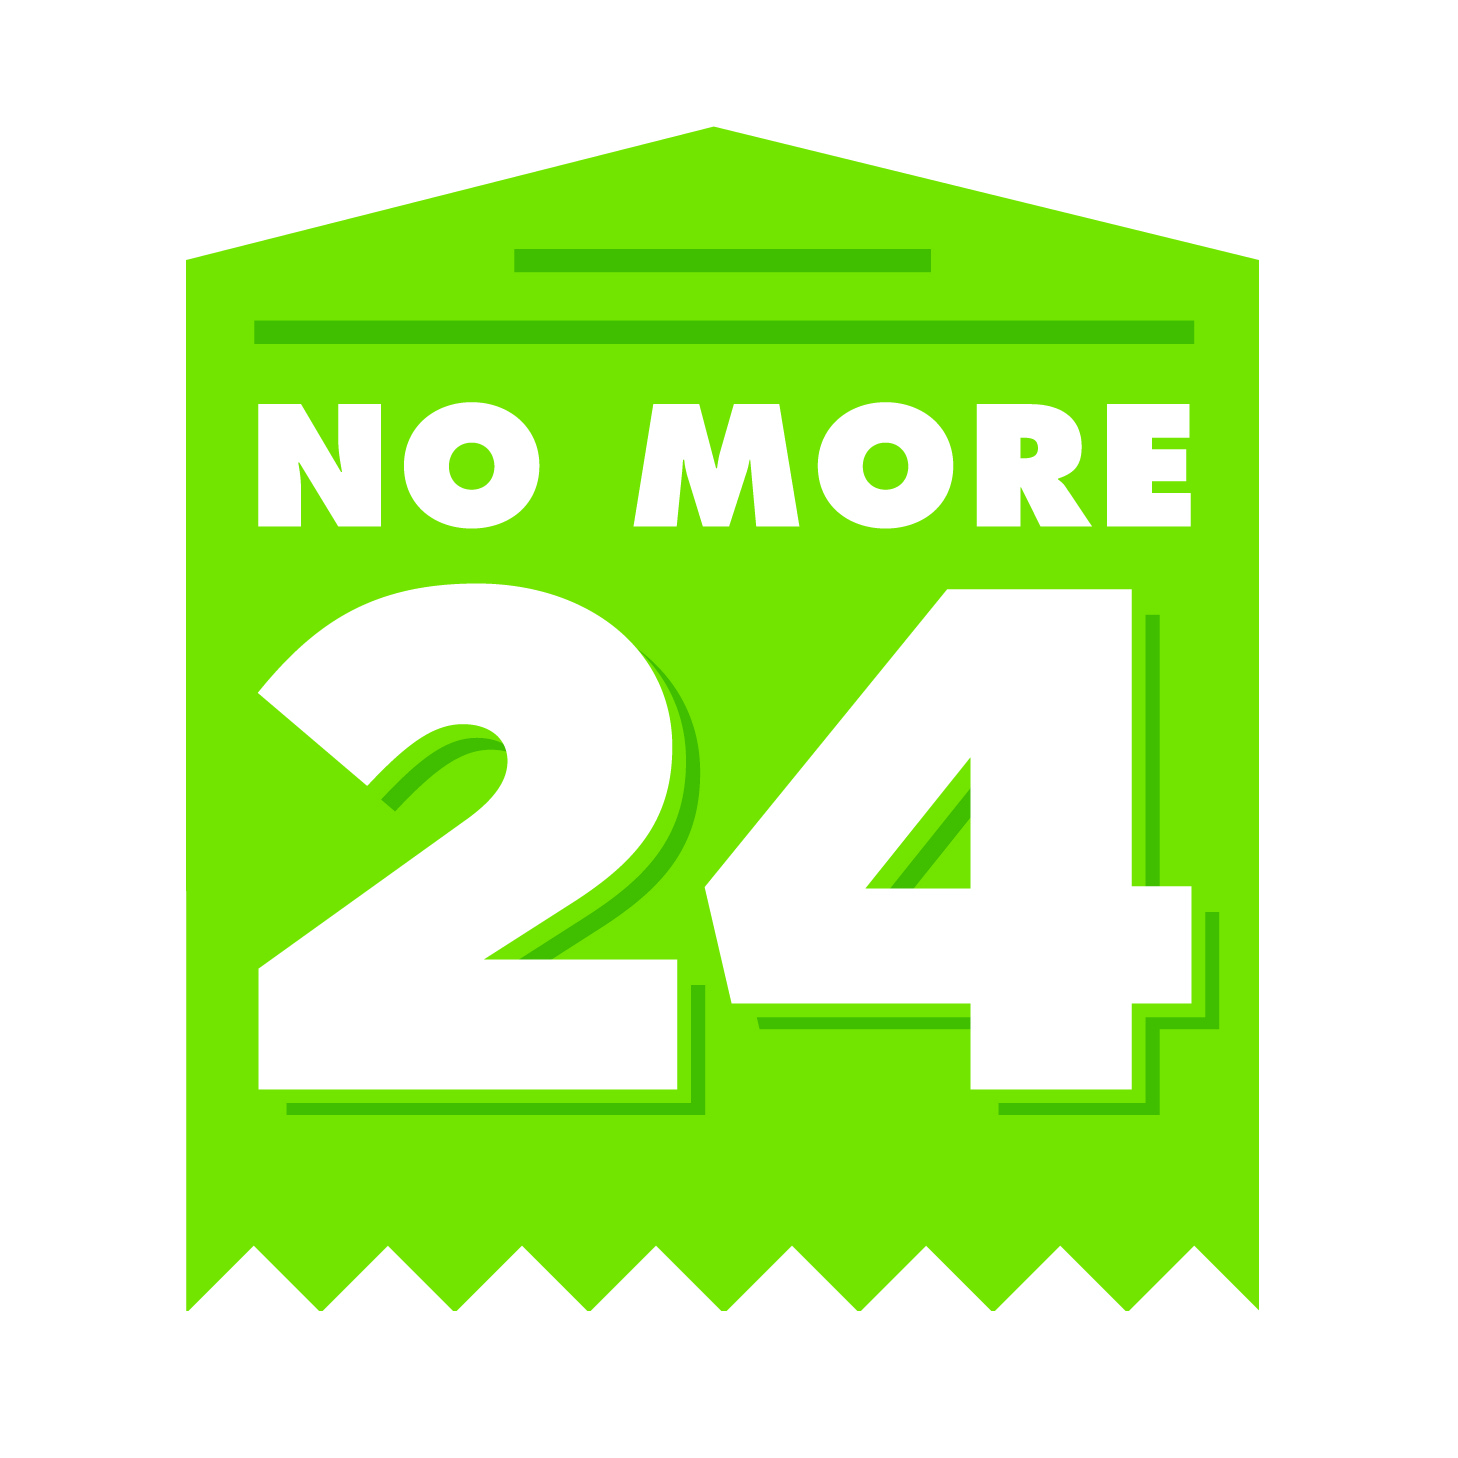 LiveWell Colorado: No More 24, LiveWell Colorado, No more 24 campaign, LiveWell Colorado campaign, Childhood health, childhood obesity